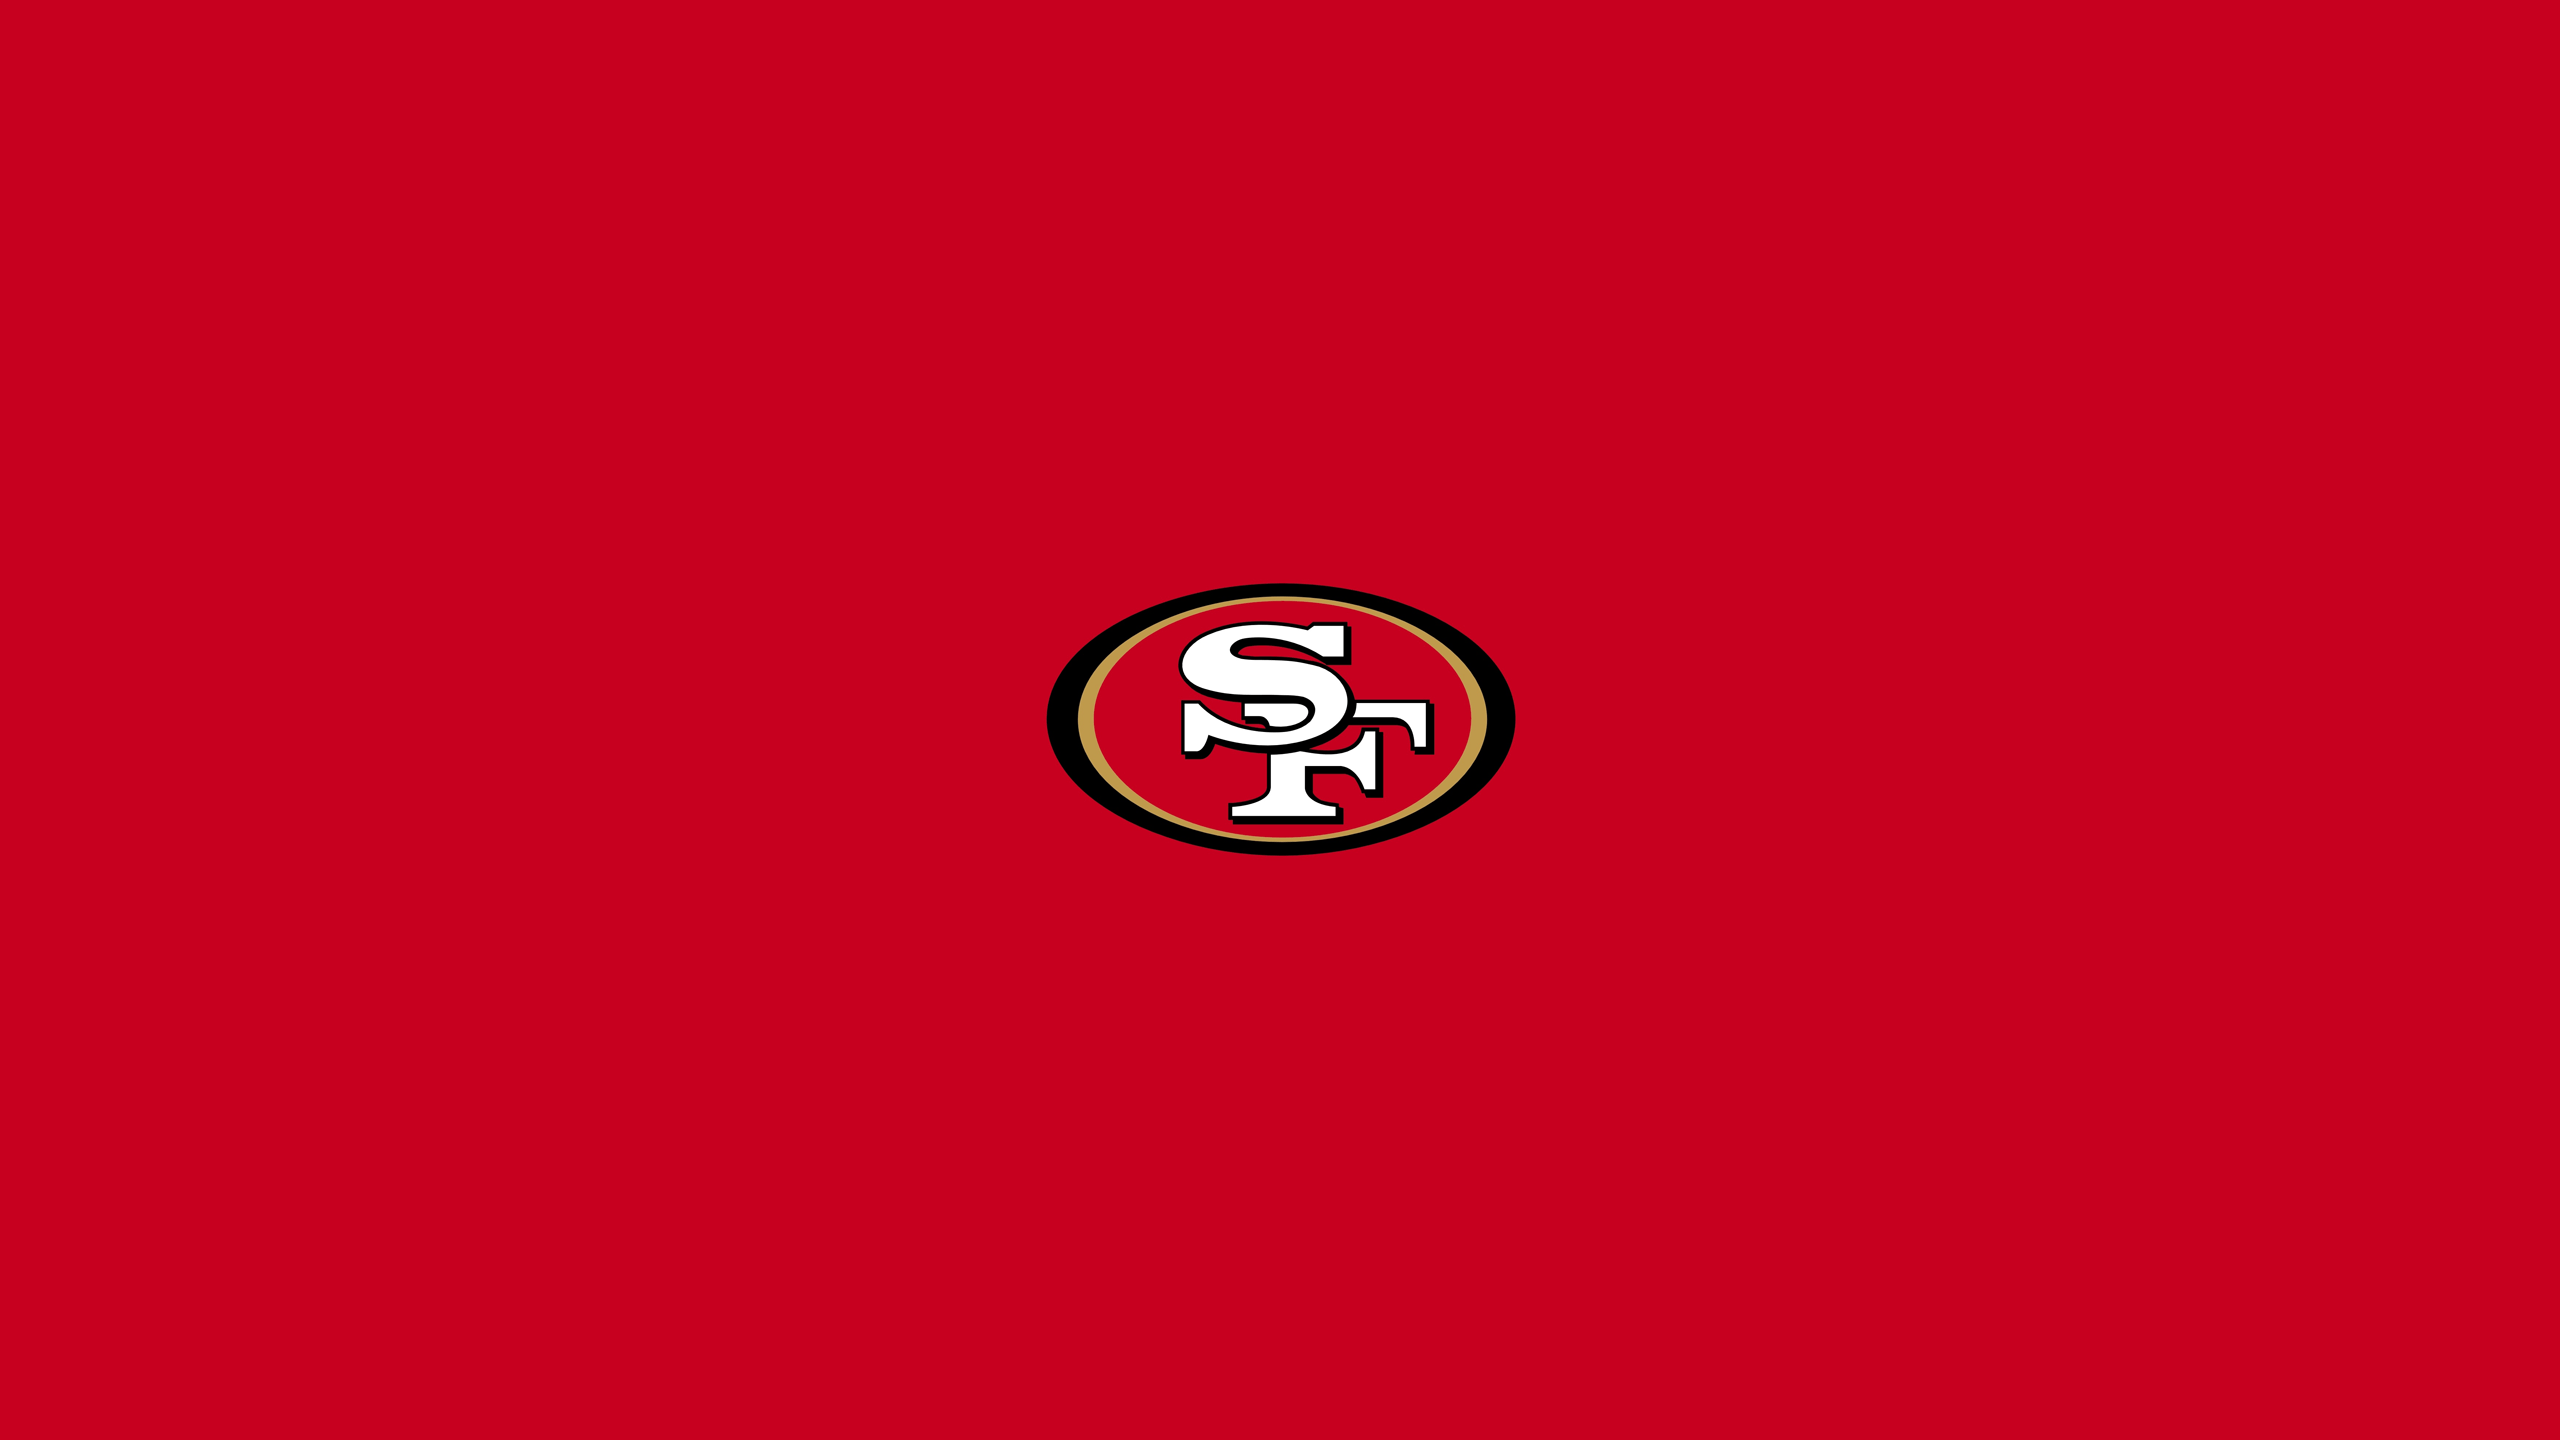 Free 49ers Wallpapers - Wallpaper Cave